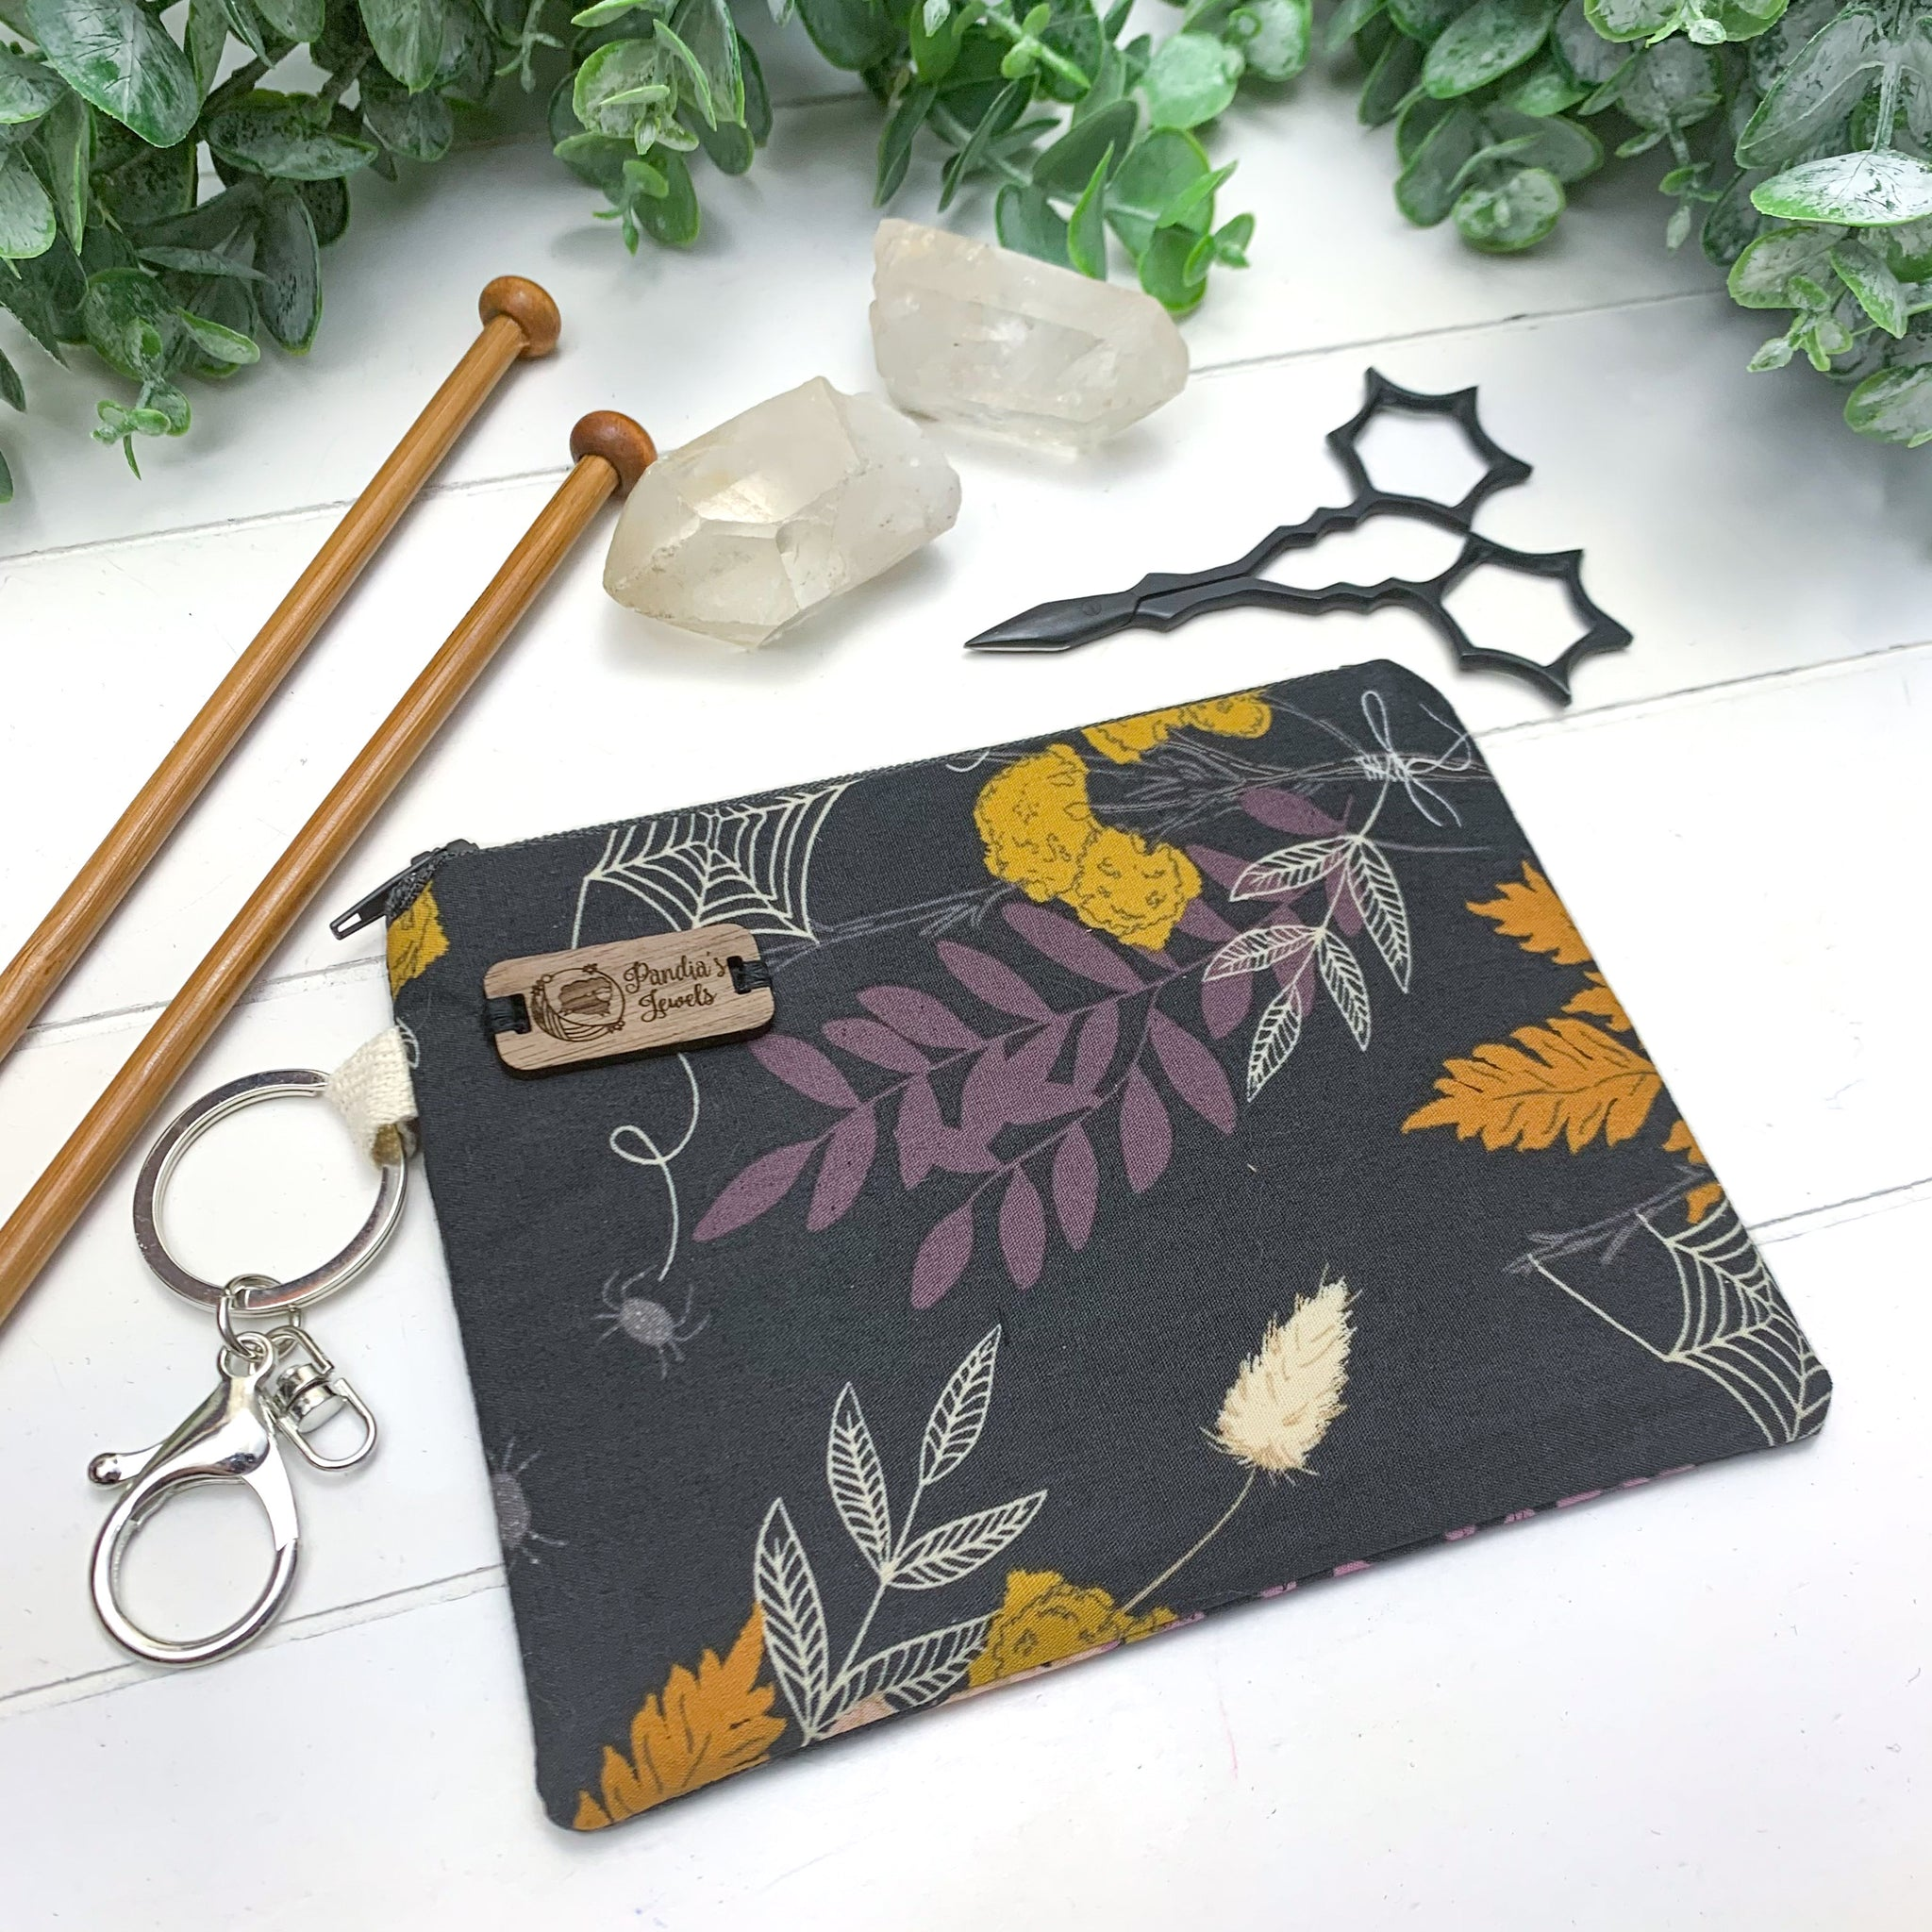 Cast A Spell - Extra Small Flat Notions Pouch